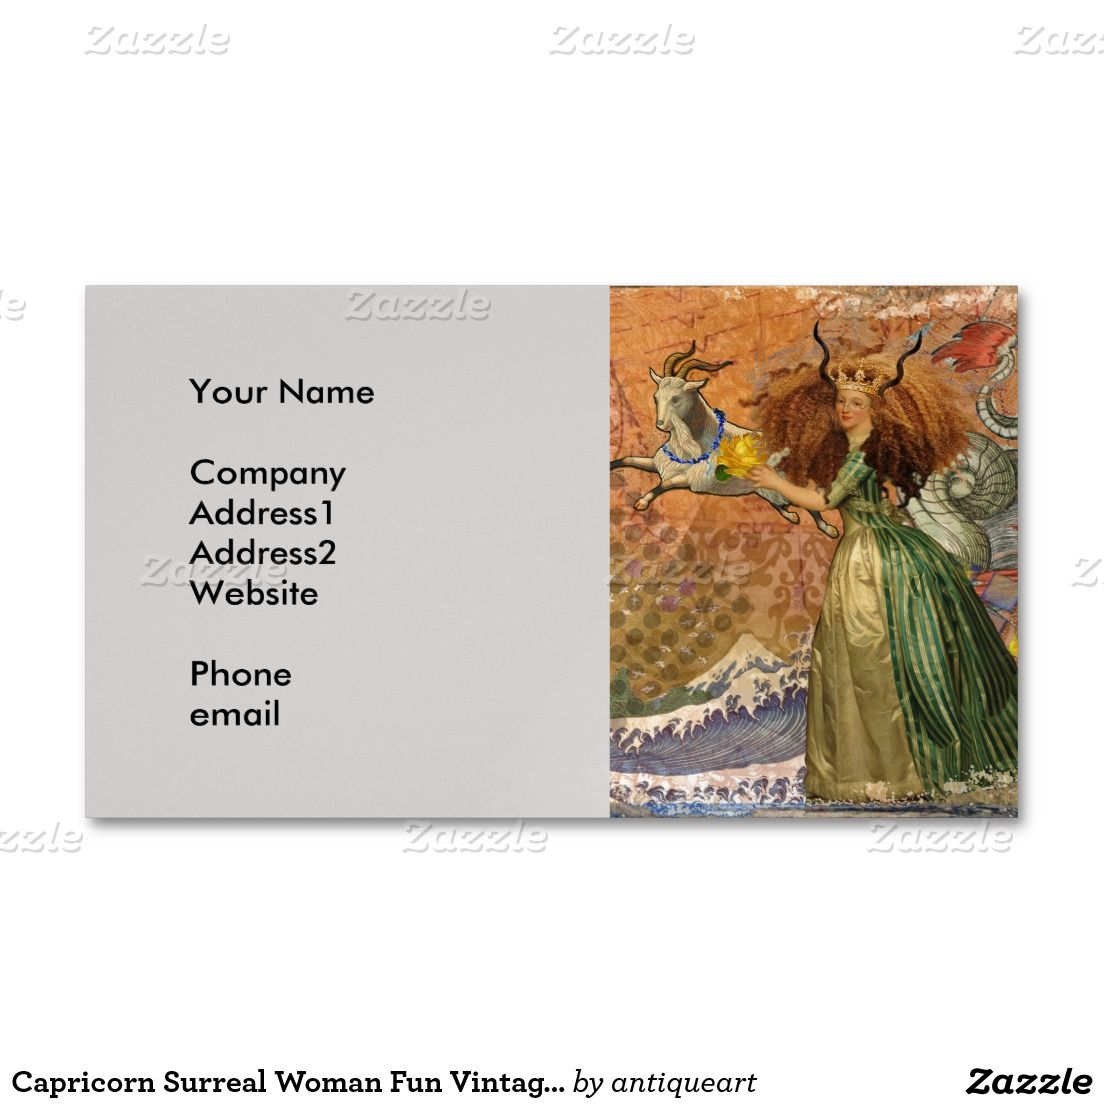 Capricorn Surreal Woman Fun Vintage Whimsical Magnetic Business